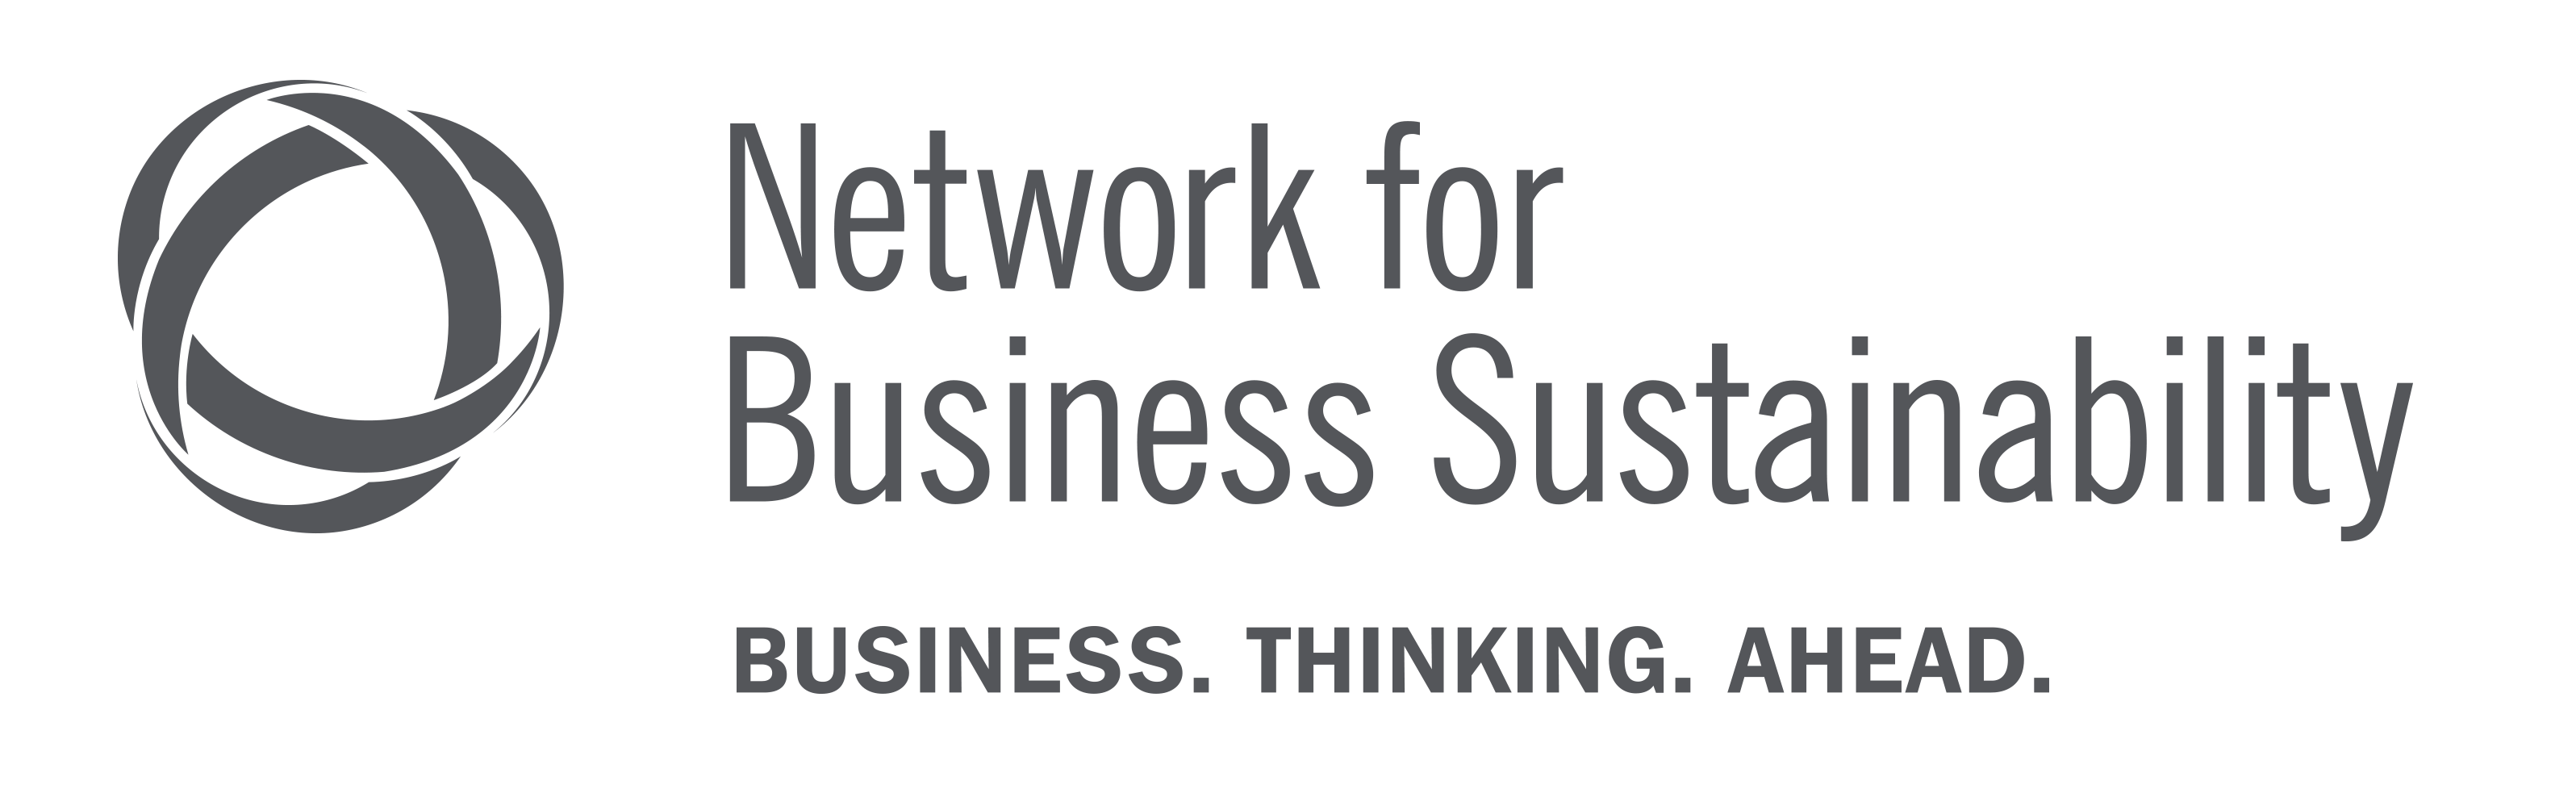 Network for Business Sustainability, Ivey Business School